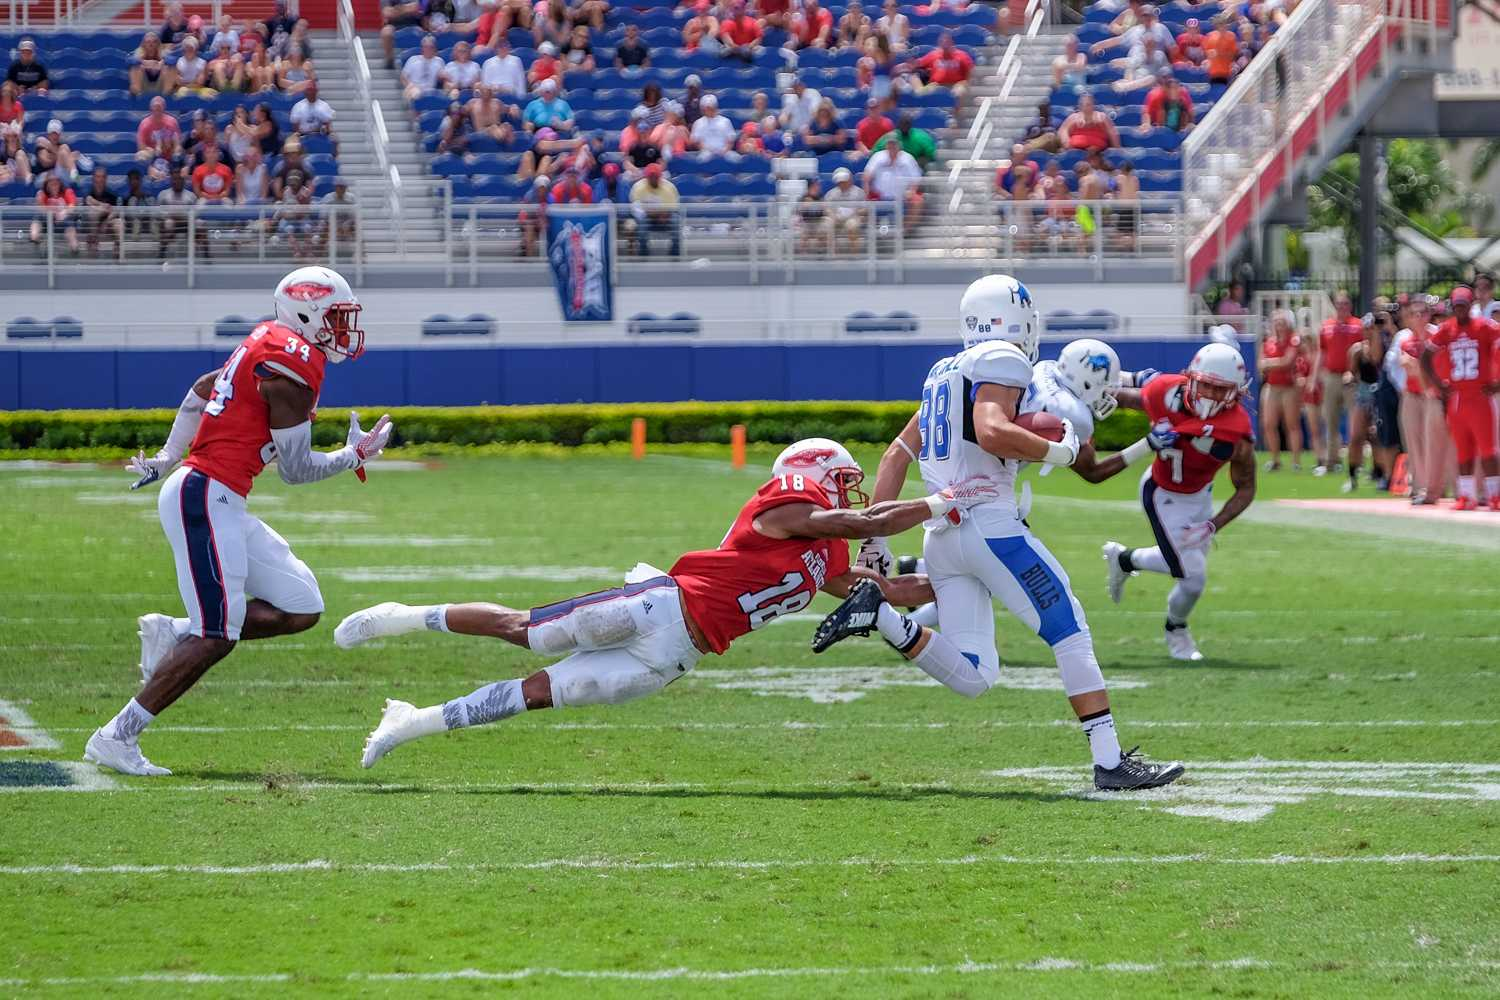 Freshman safety Jalen Young (18) tackles Buffalo wide receiver Jacob Martinez (88). Mohammed F Emran   Staff Photographer